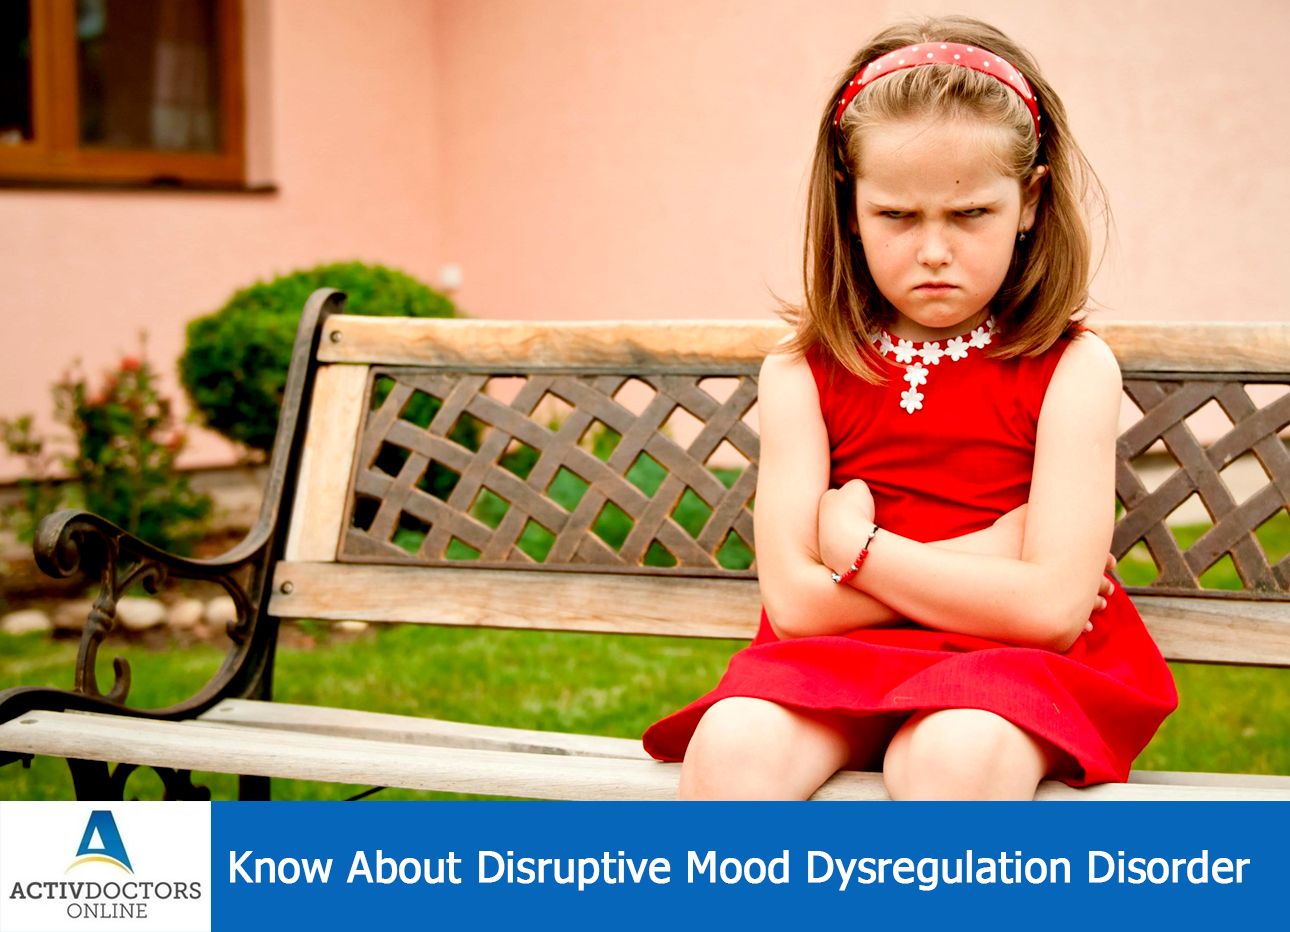 Know About Disruptive Mood Dysregulation Disorders